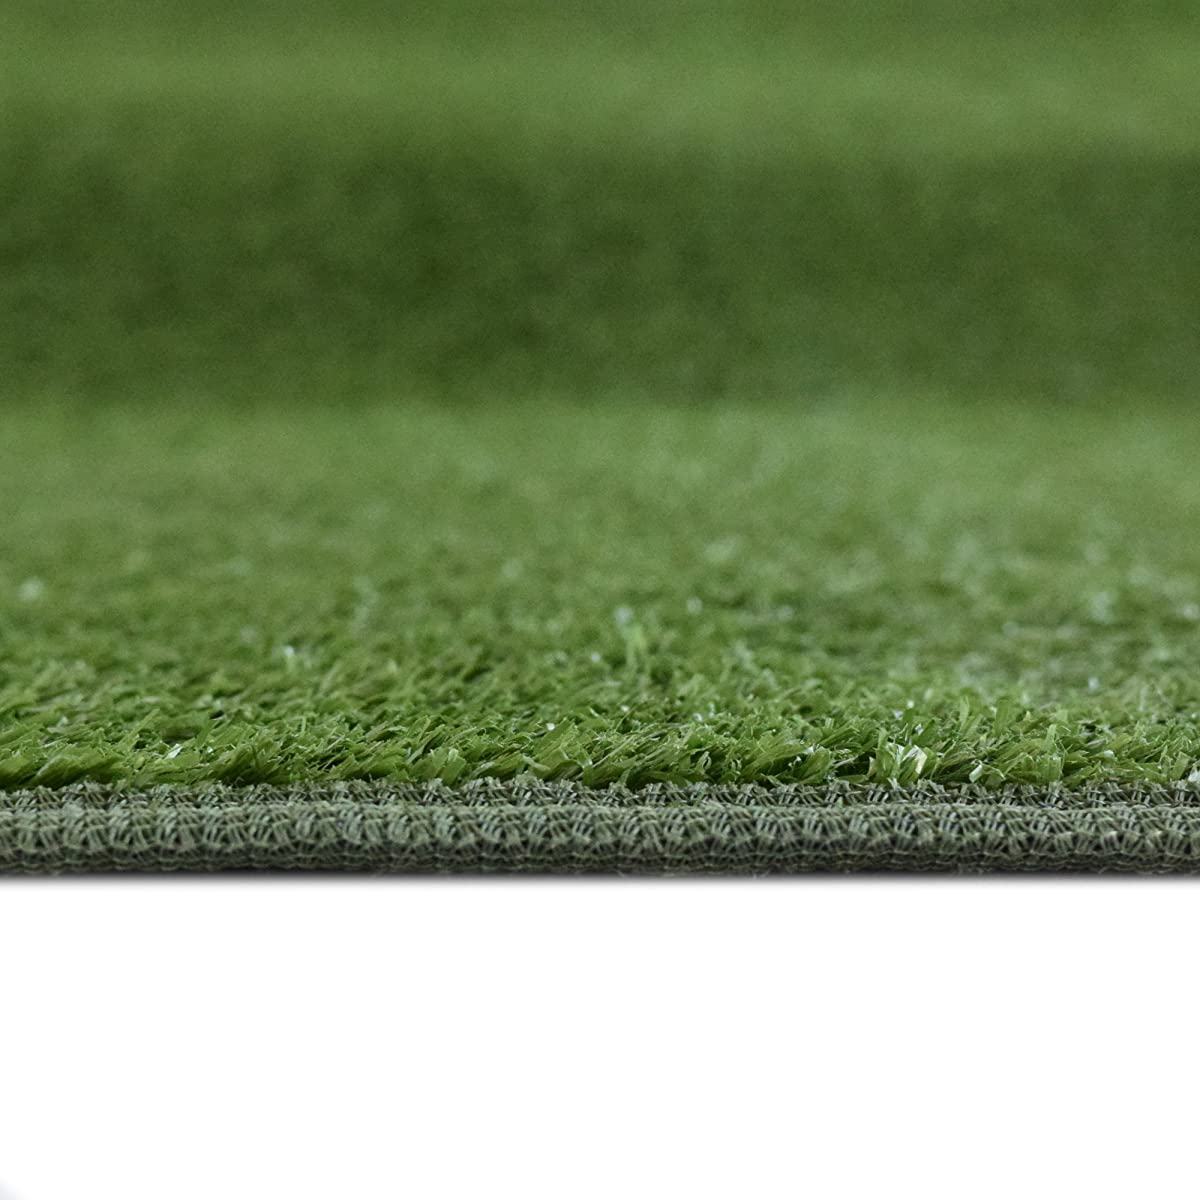 iCustomRug Outdoor Turf Rug in Green Artificial Grass In 6 X 13 And Many Other Sizes Available